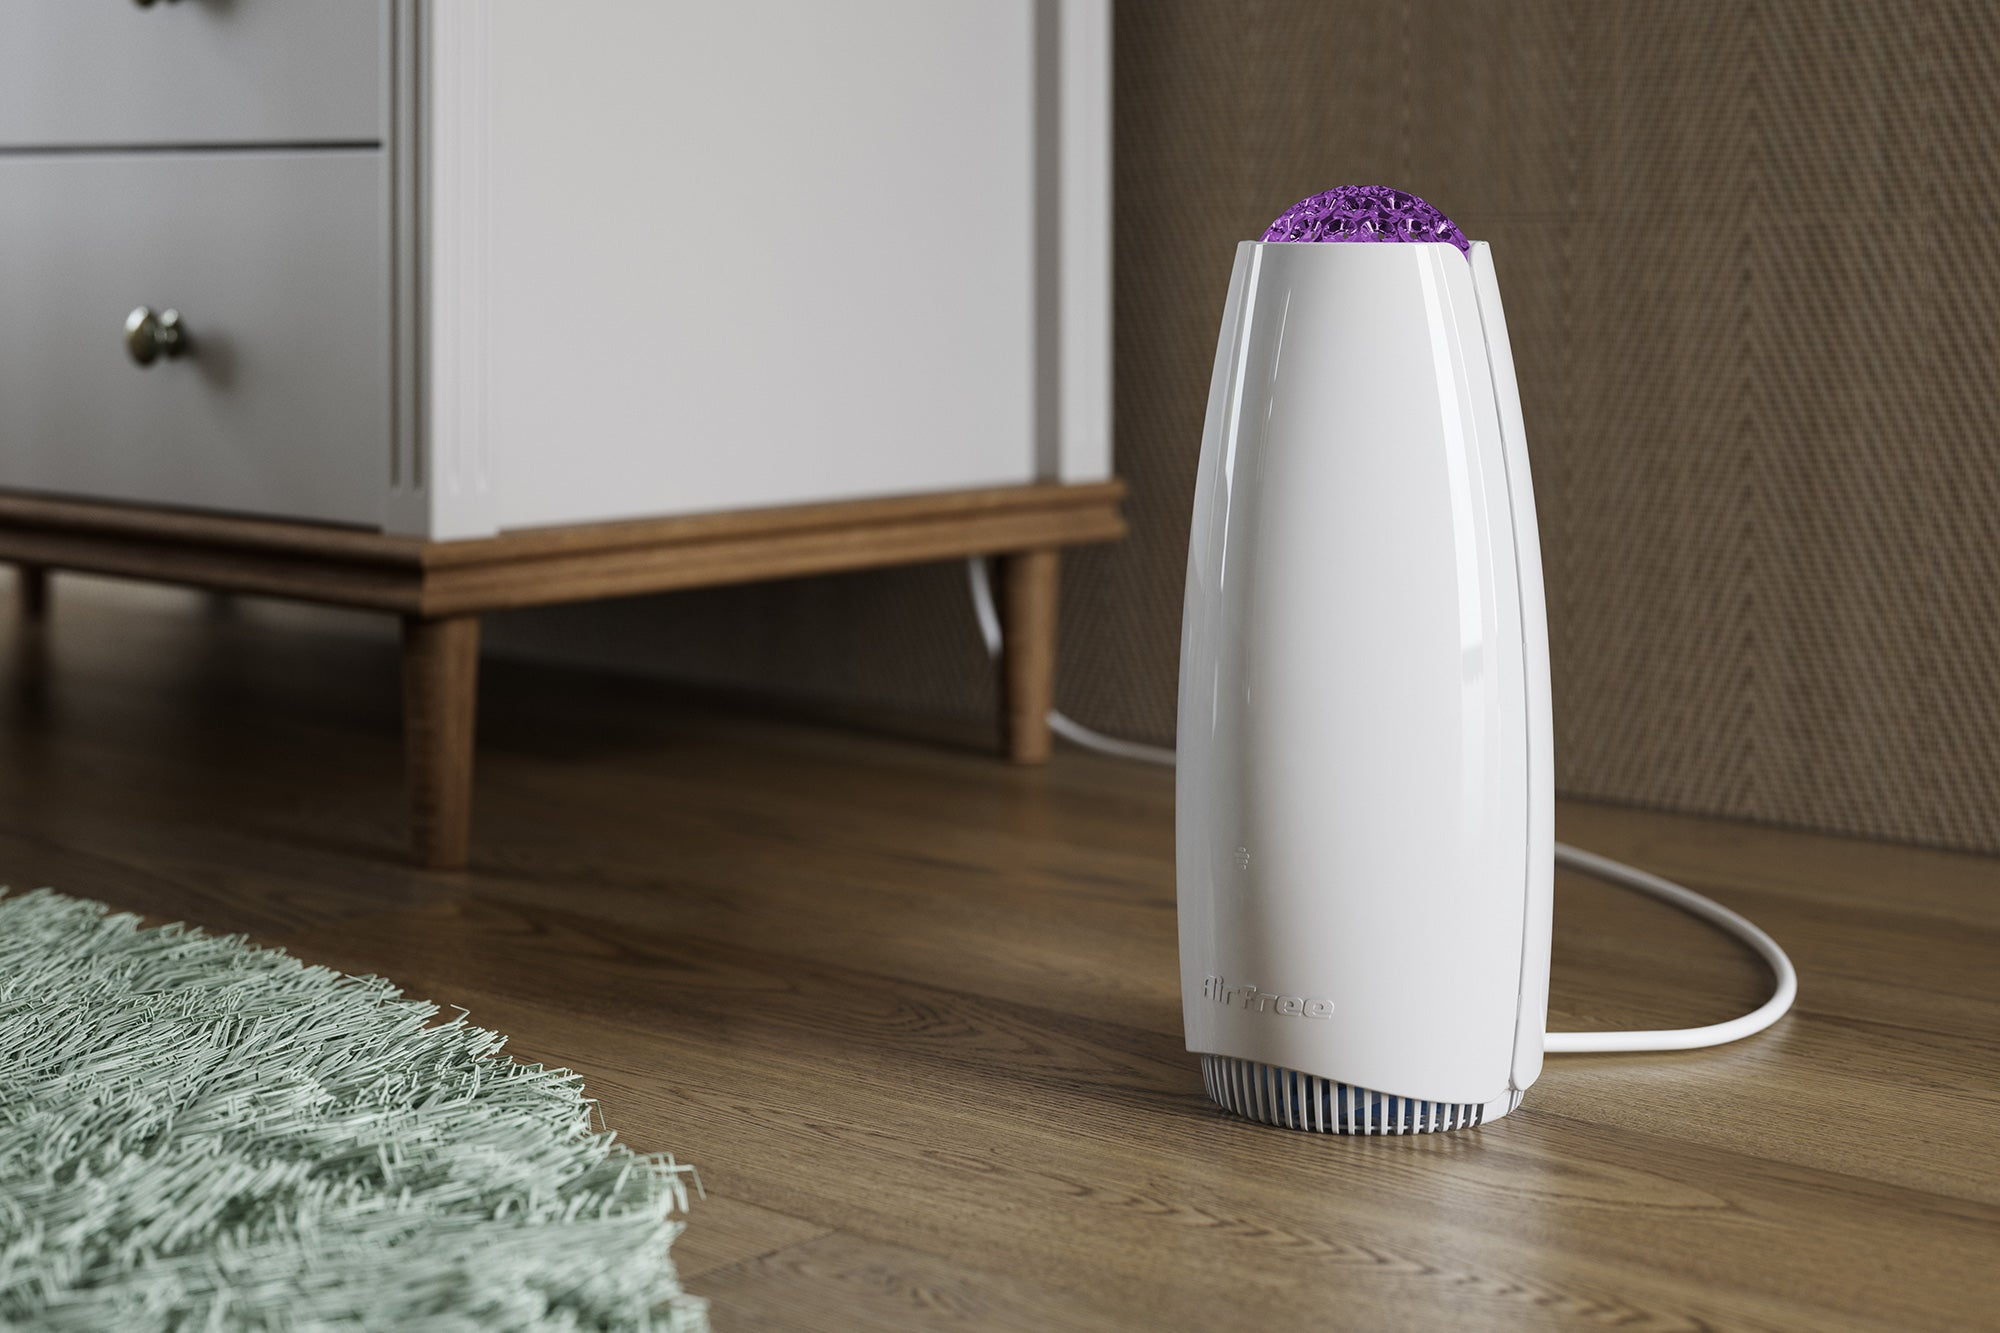 AirPurifier AirFree Filterless Tulip 1000 Air Purifier - White